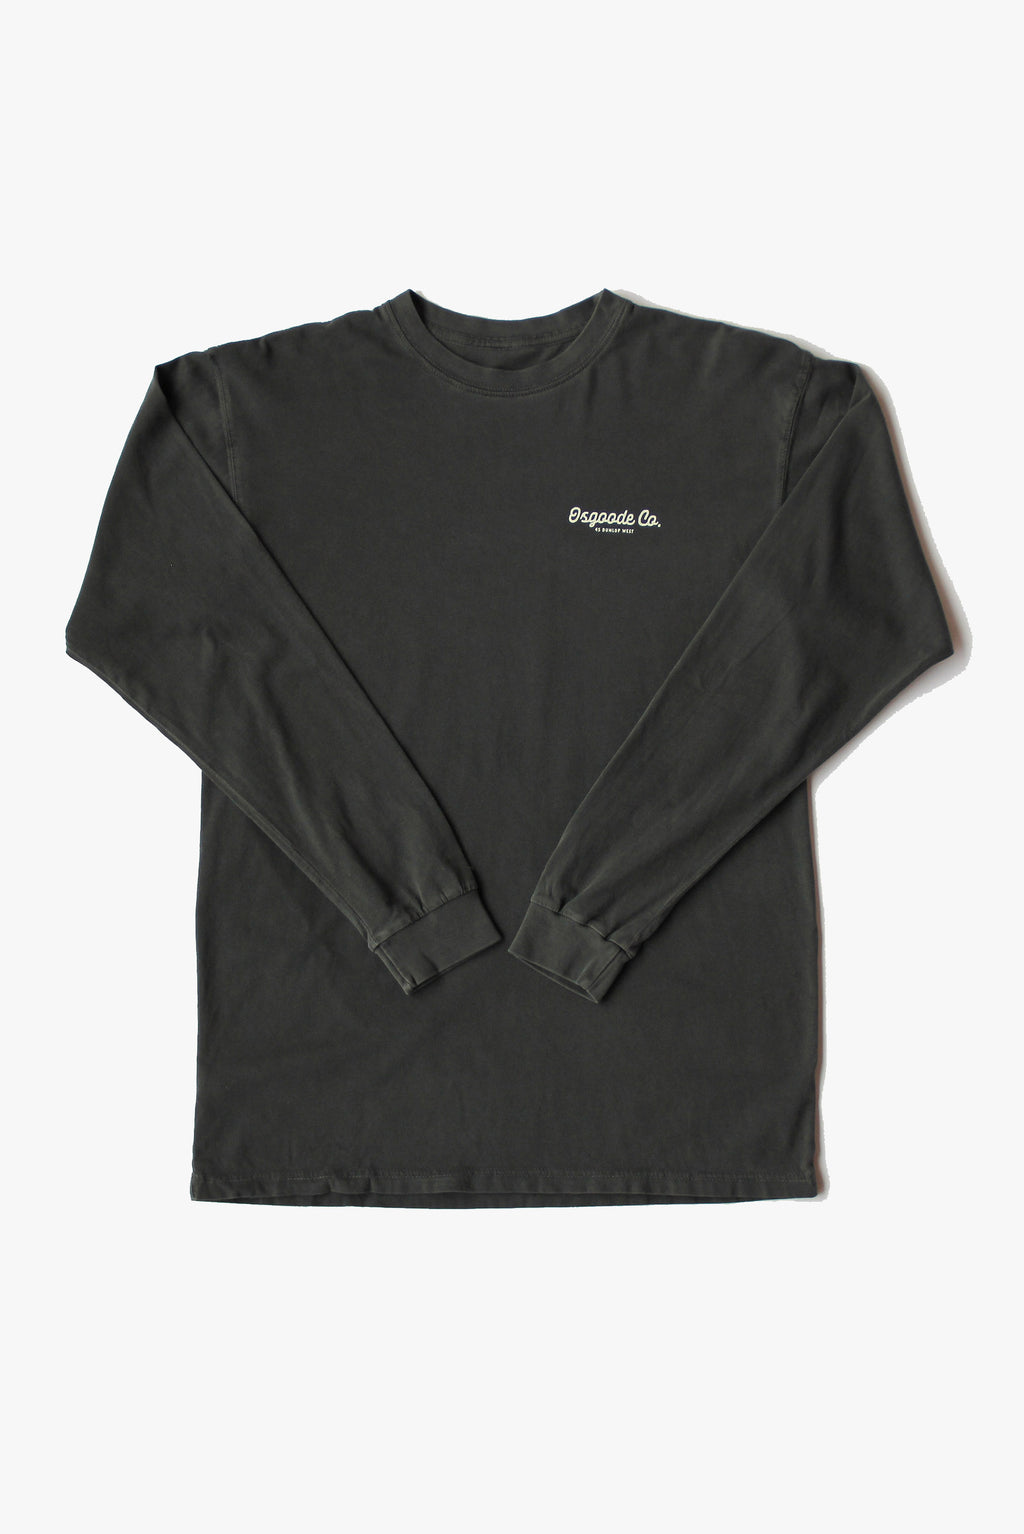 NO BAD DAYS LONG SLEEVE FADED BLACK